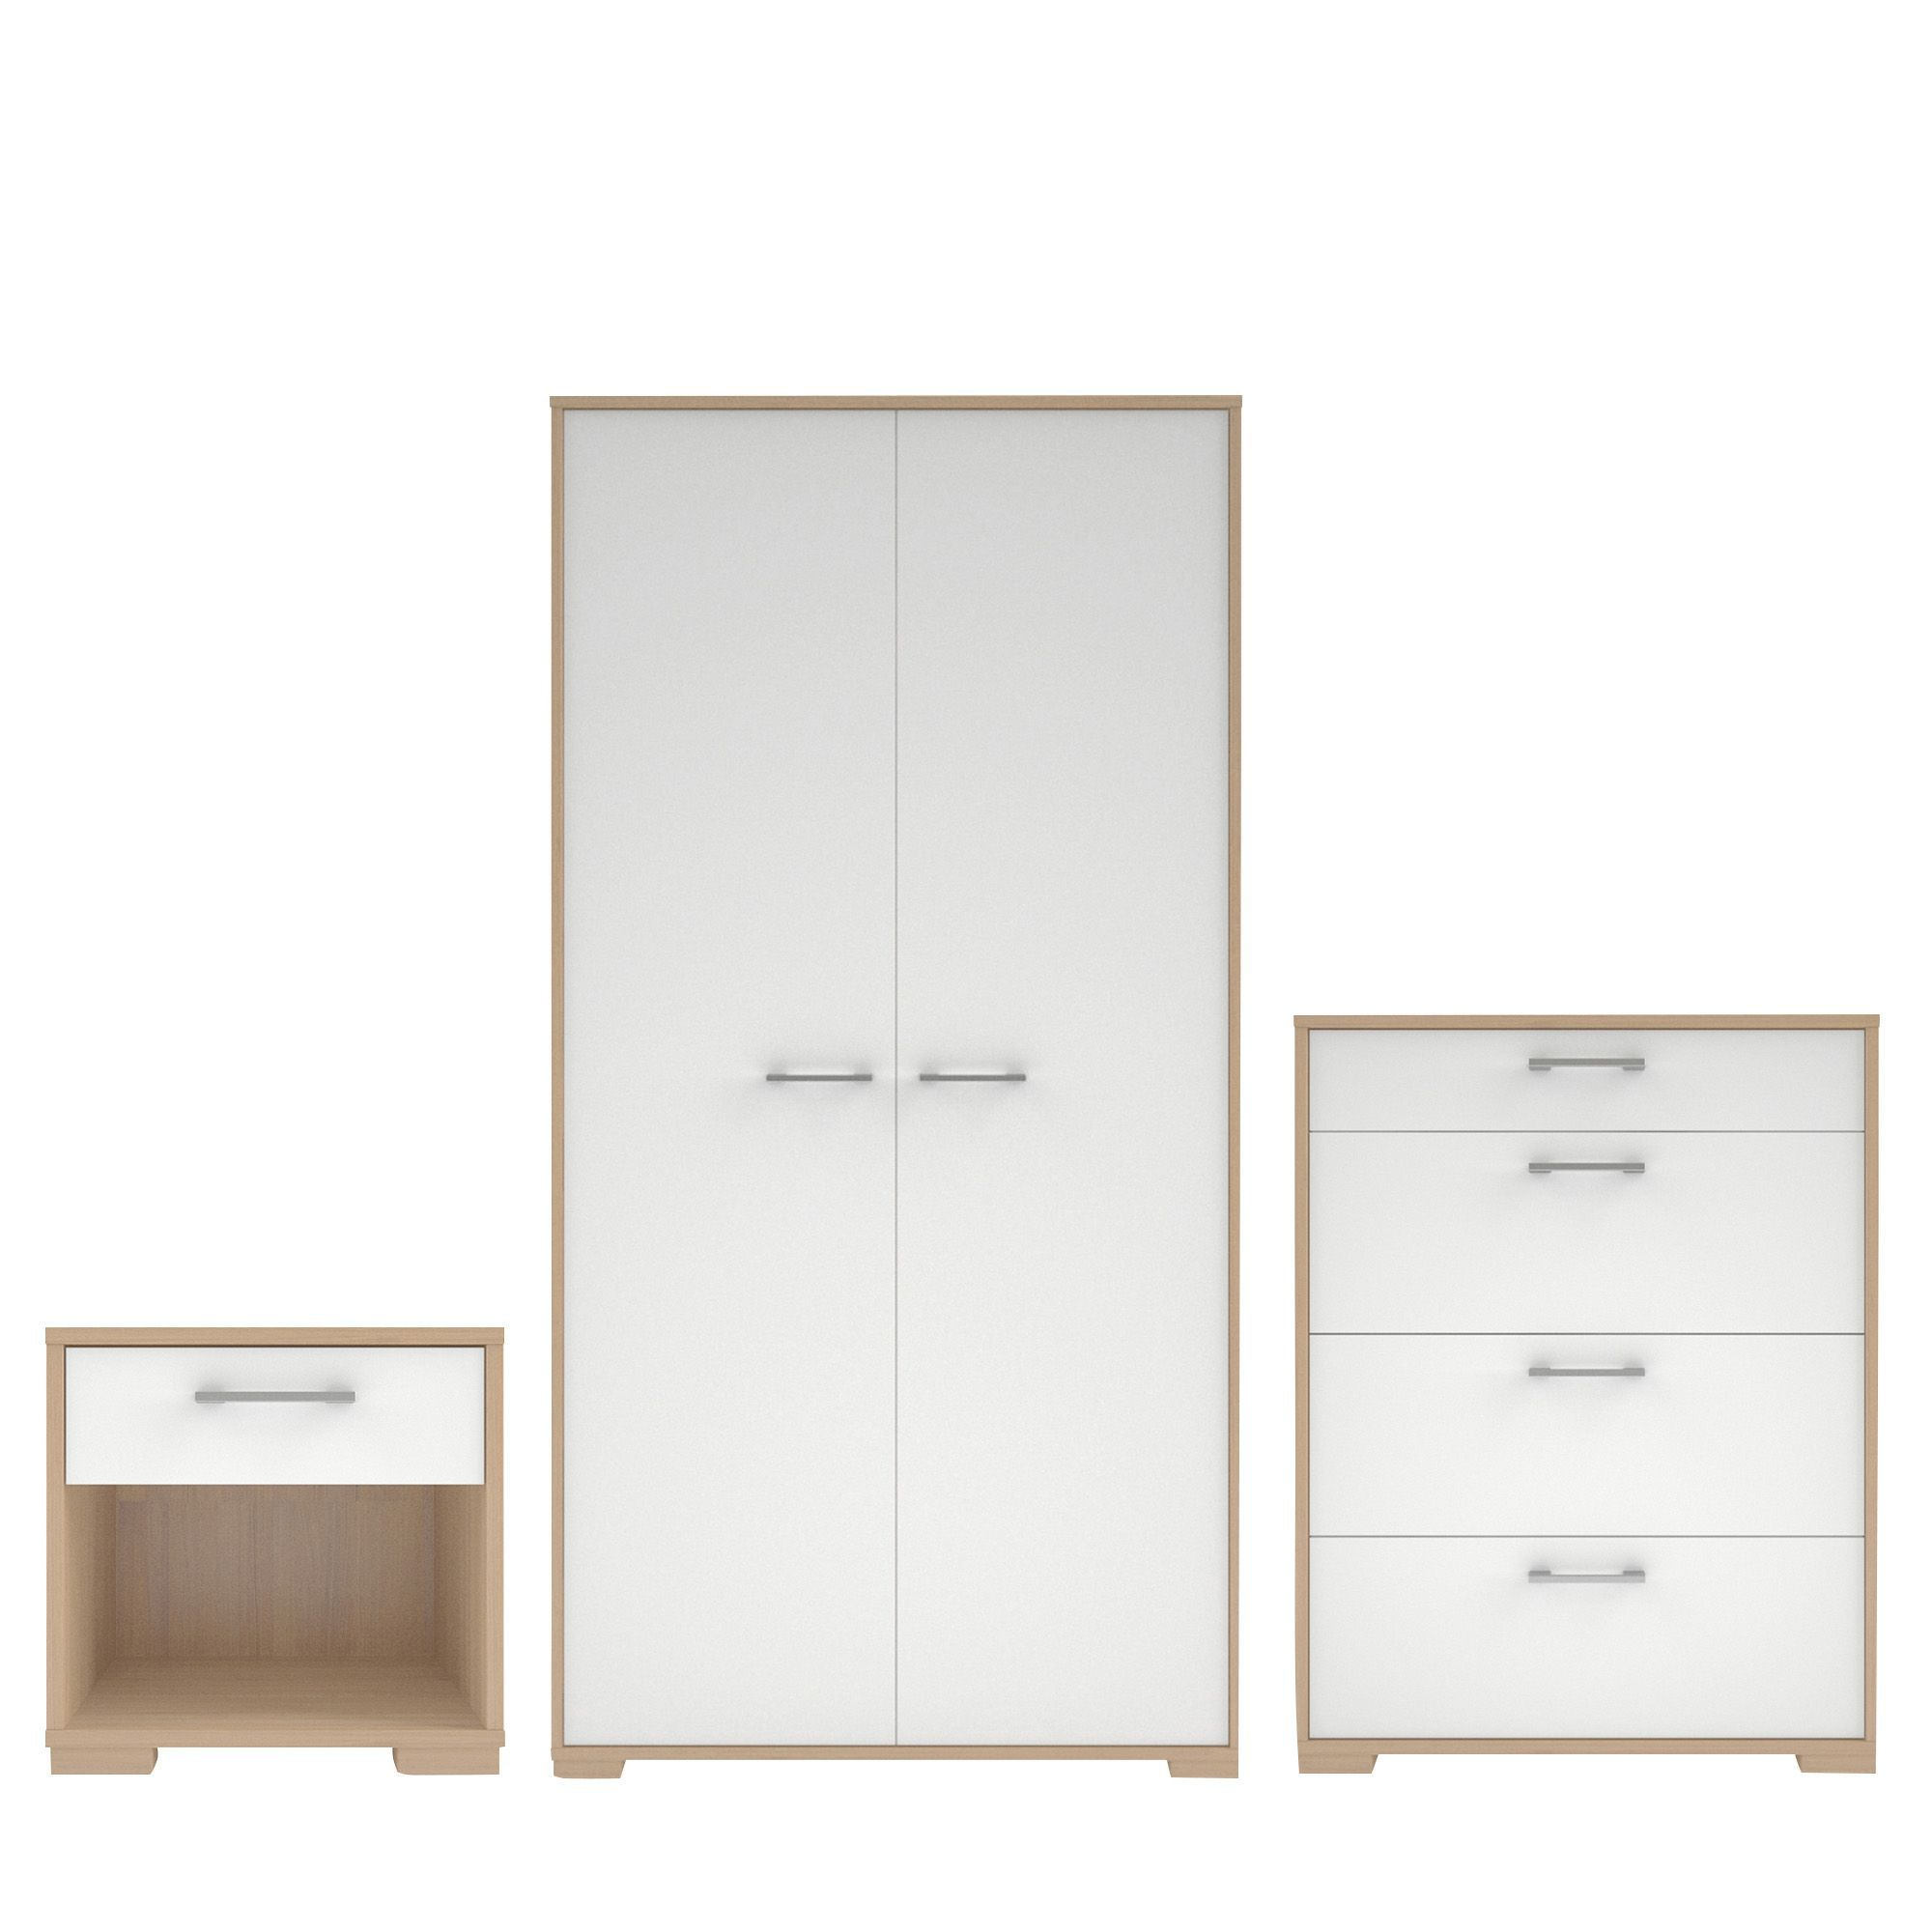 Evie Matt & High Gloss White & Oak Effect 3 Piece Bedroom Furniture Set